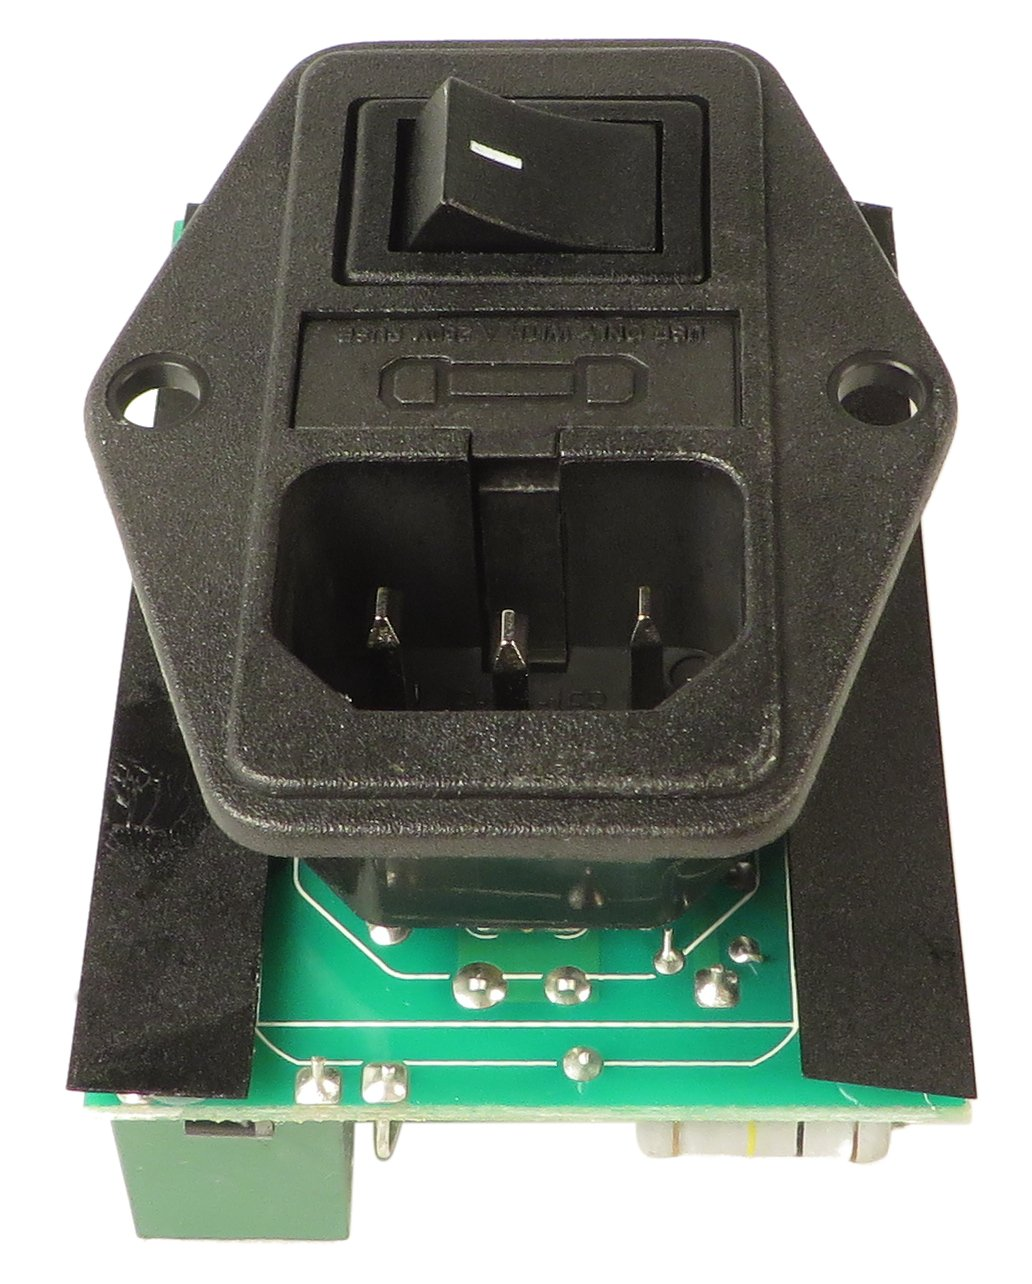 PCB AC Inlet for JBL Subwoofer